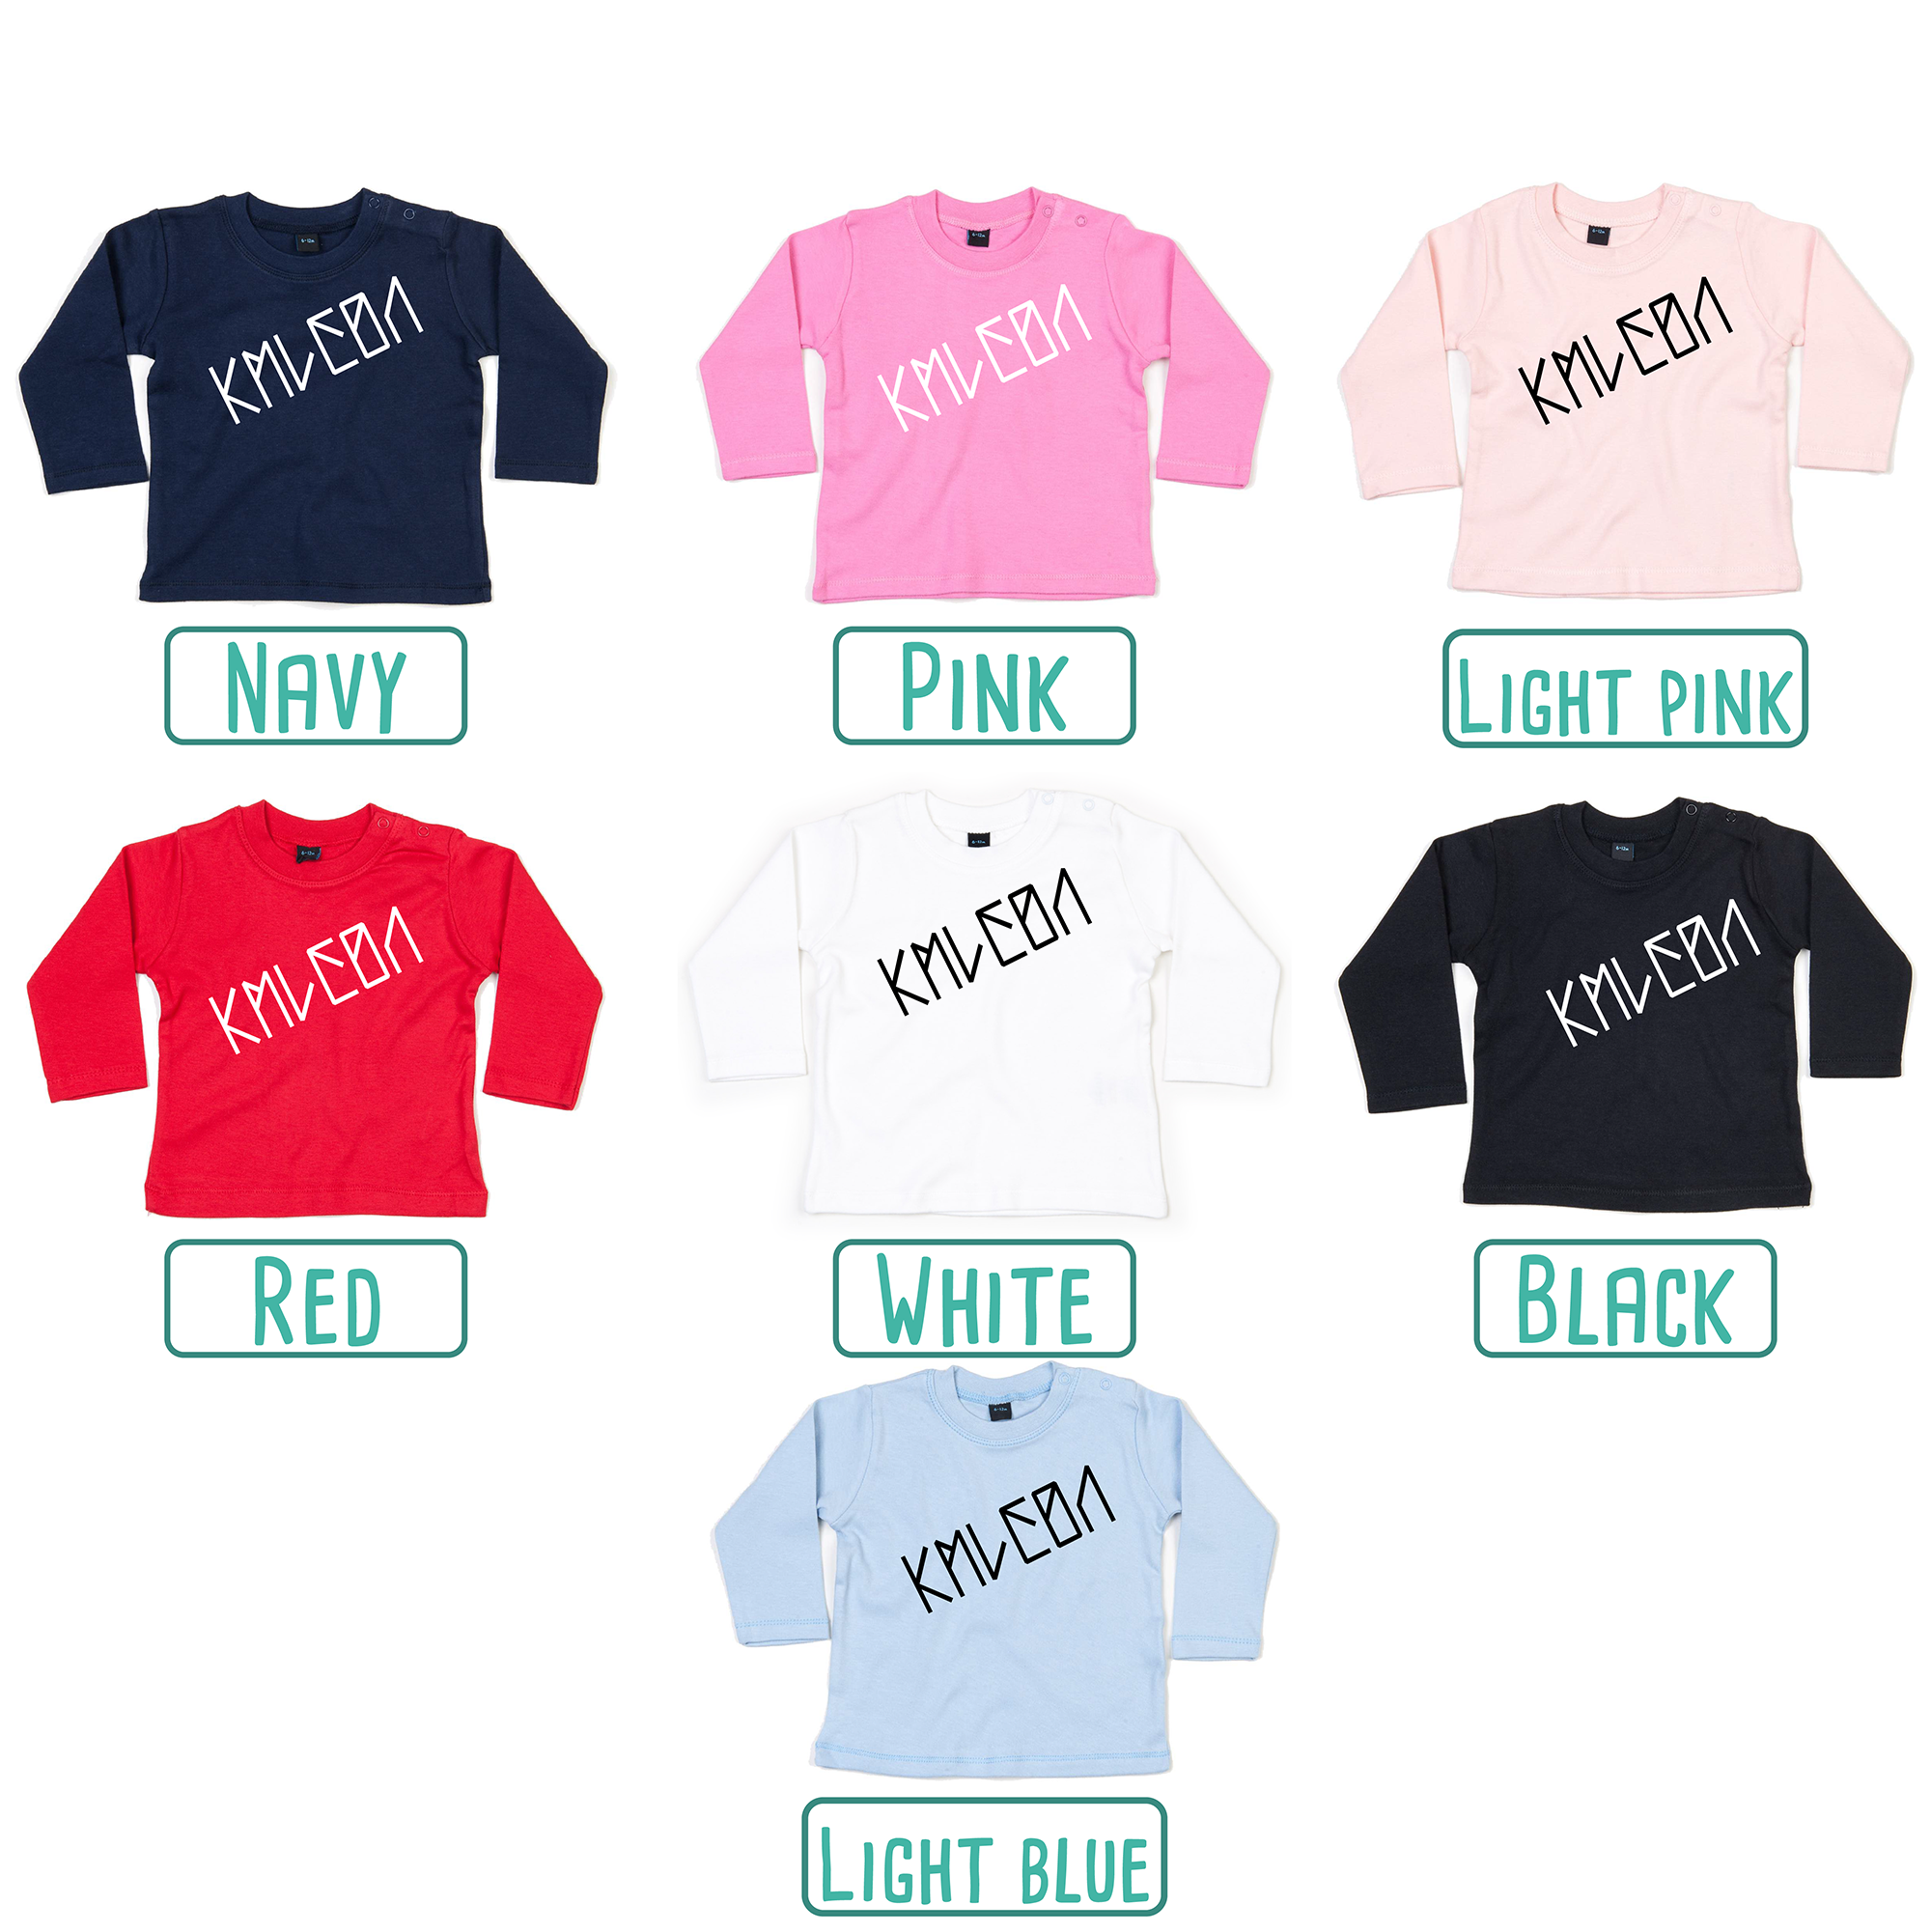 Colour options for baby or toddler shirts with long sleeves by KMLeon.